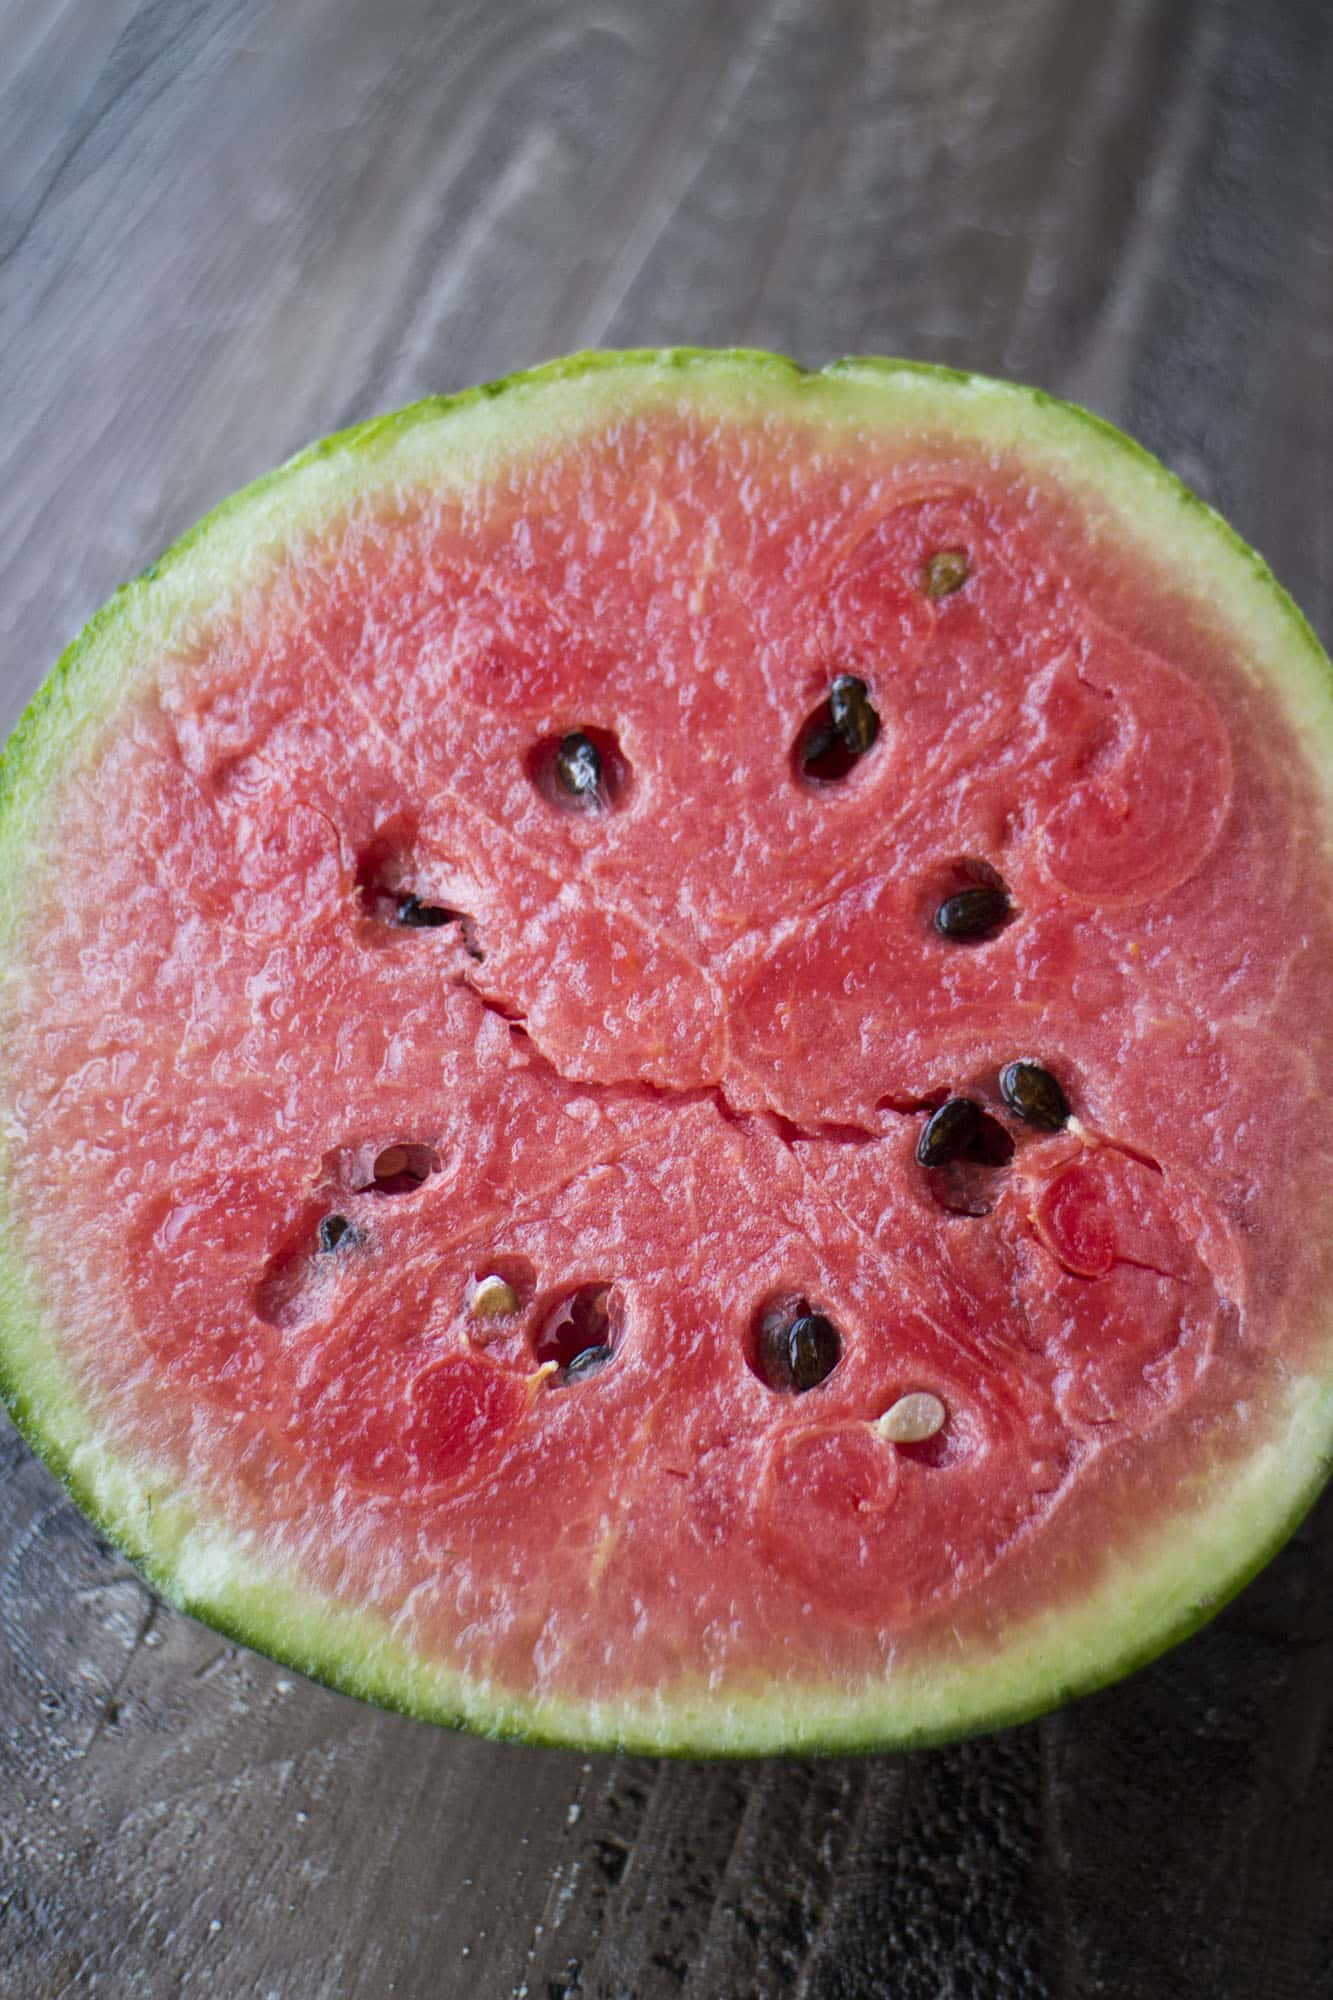 Jam from a watermelon to make simply - you only try